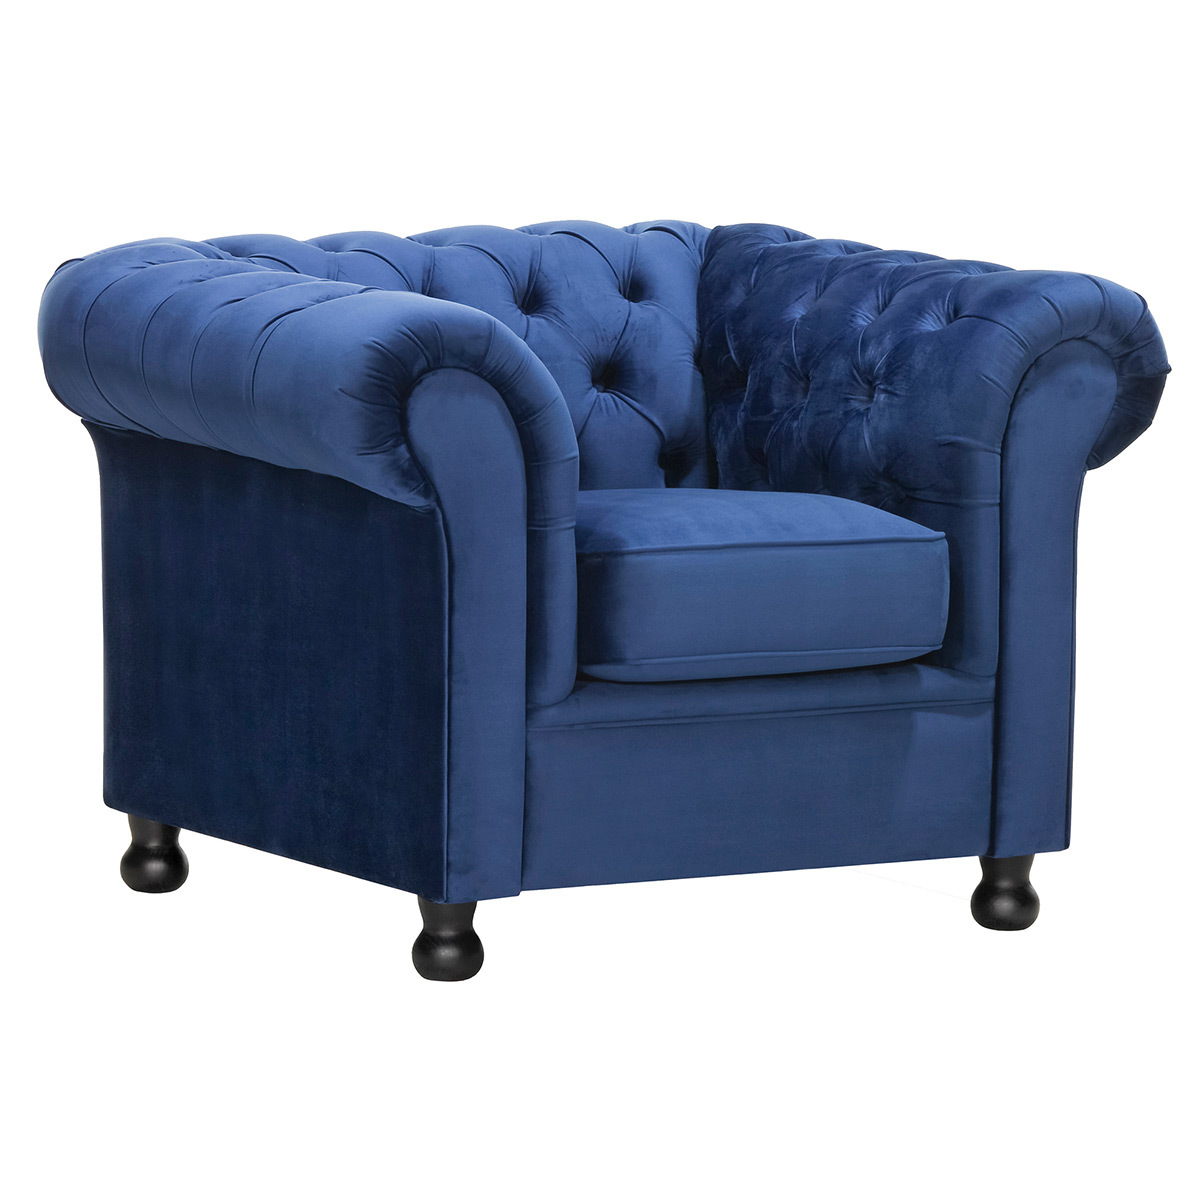 Poltrona in velluto Blu scuro CHESTERFIELD